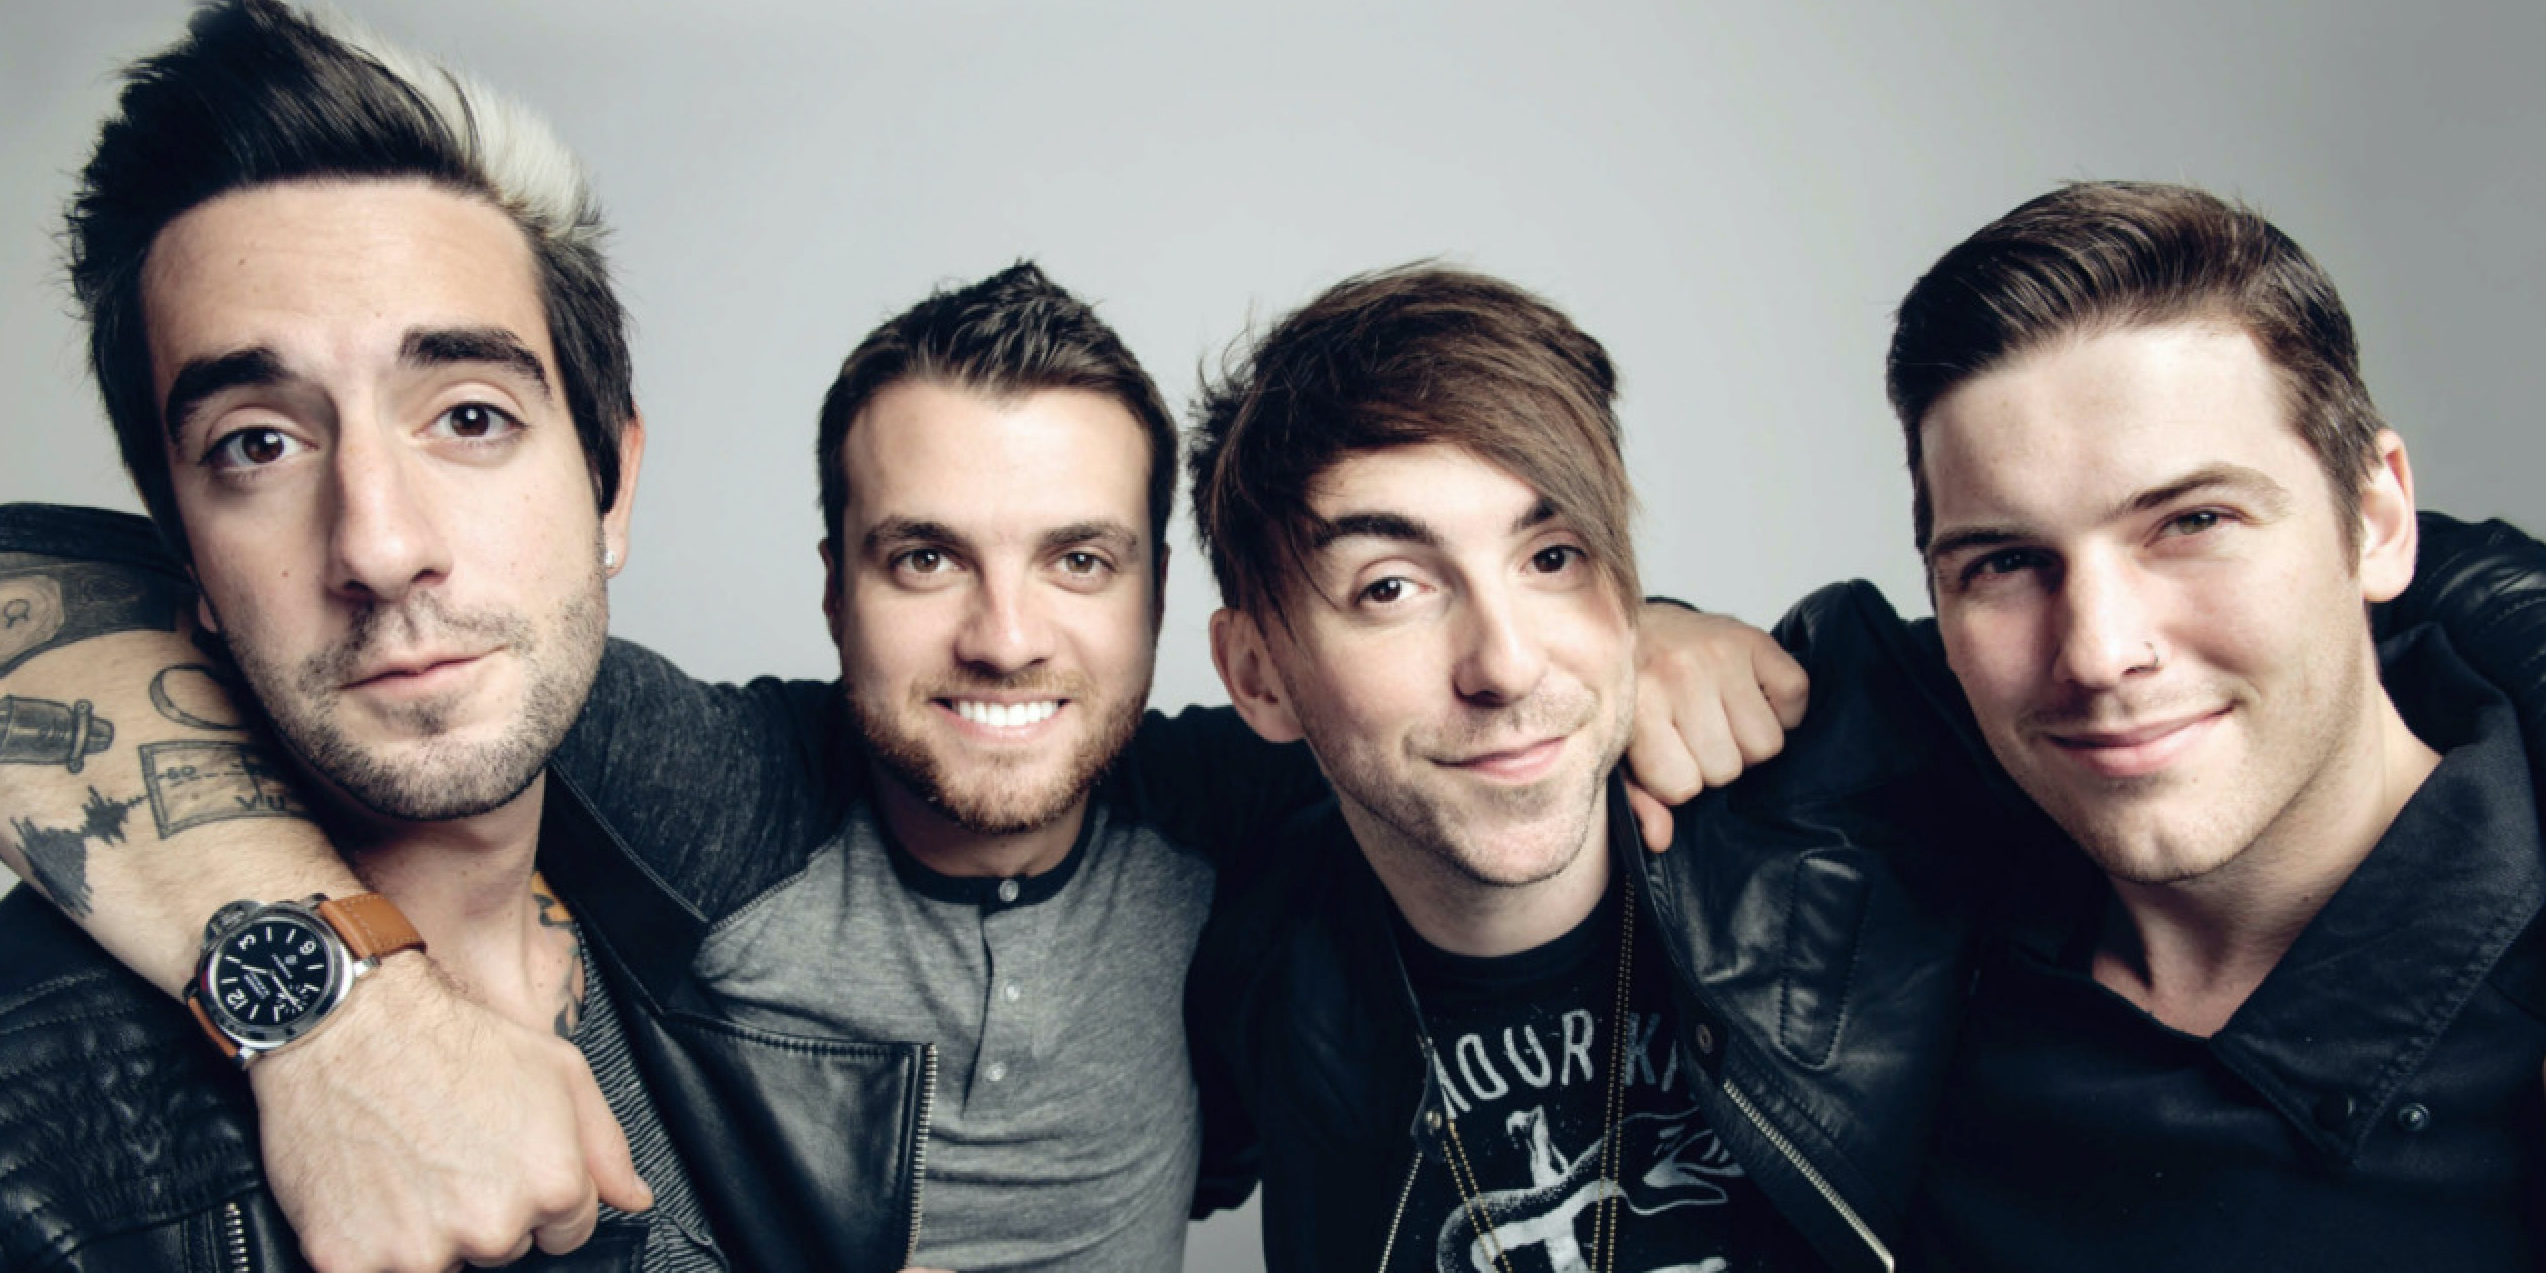 Attention All-Time Low fans, there's a Straight To DVD II screening party coming soon at CATO